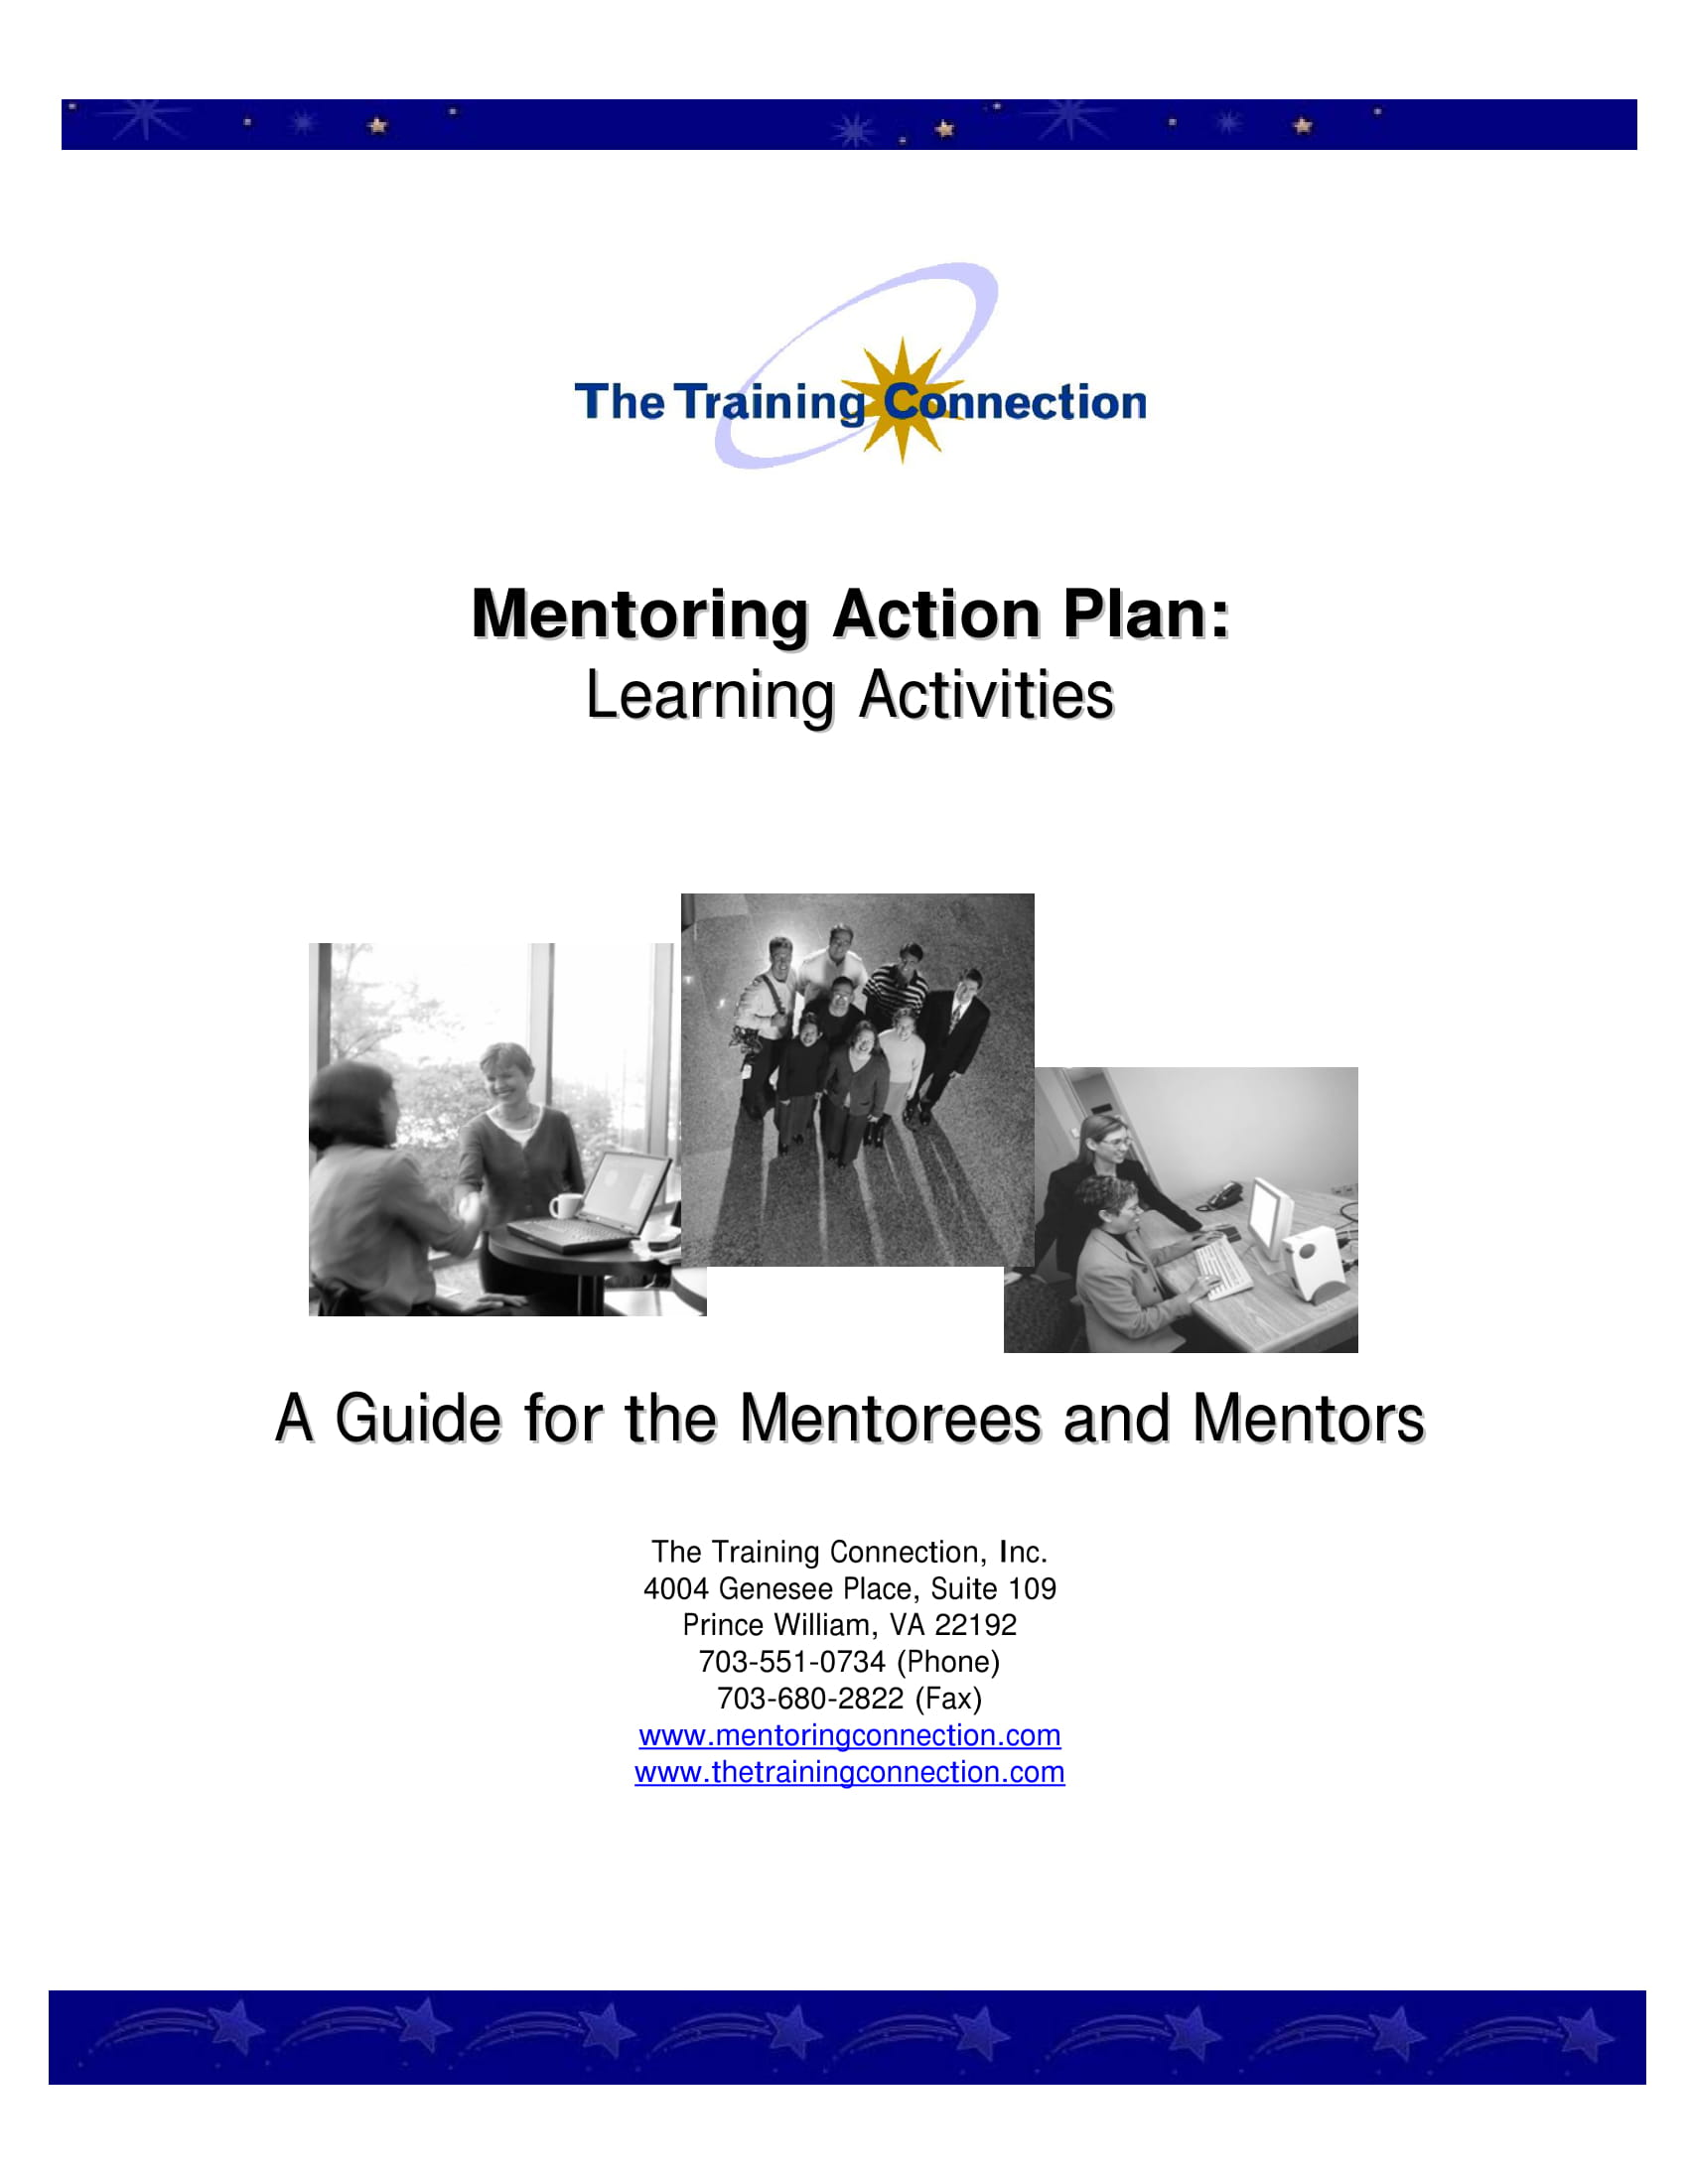 mentoring action plan learning activities example 01